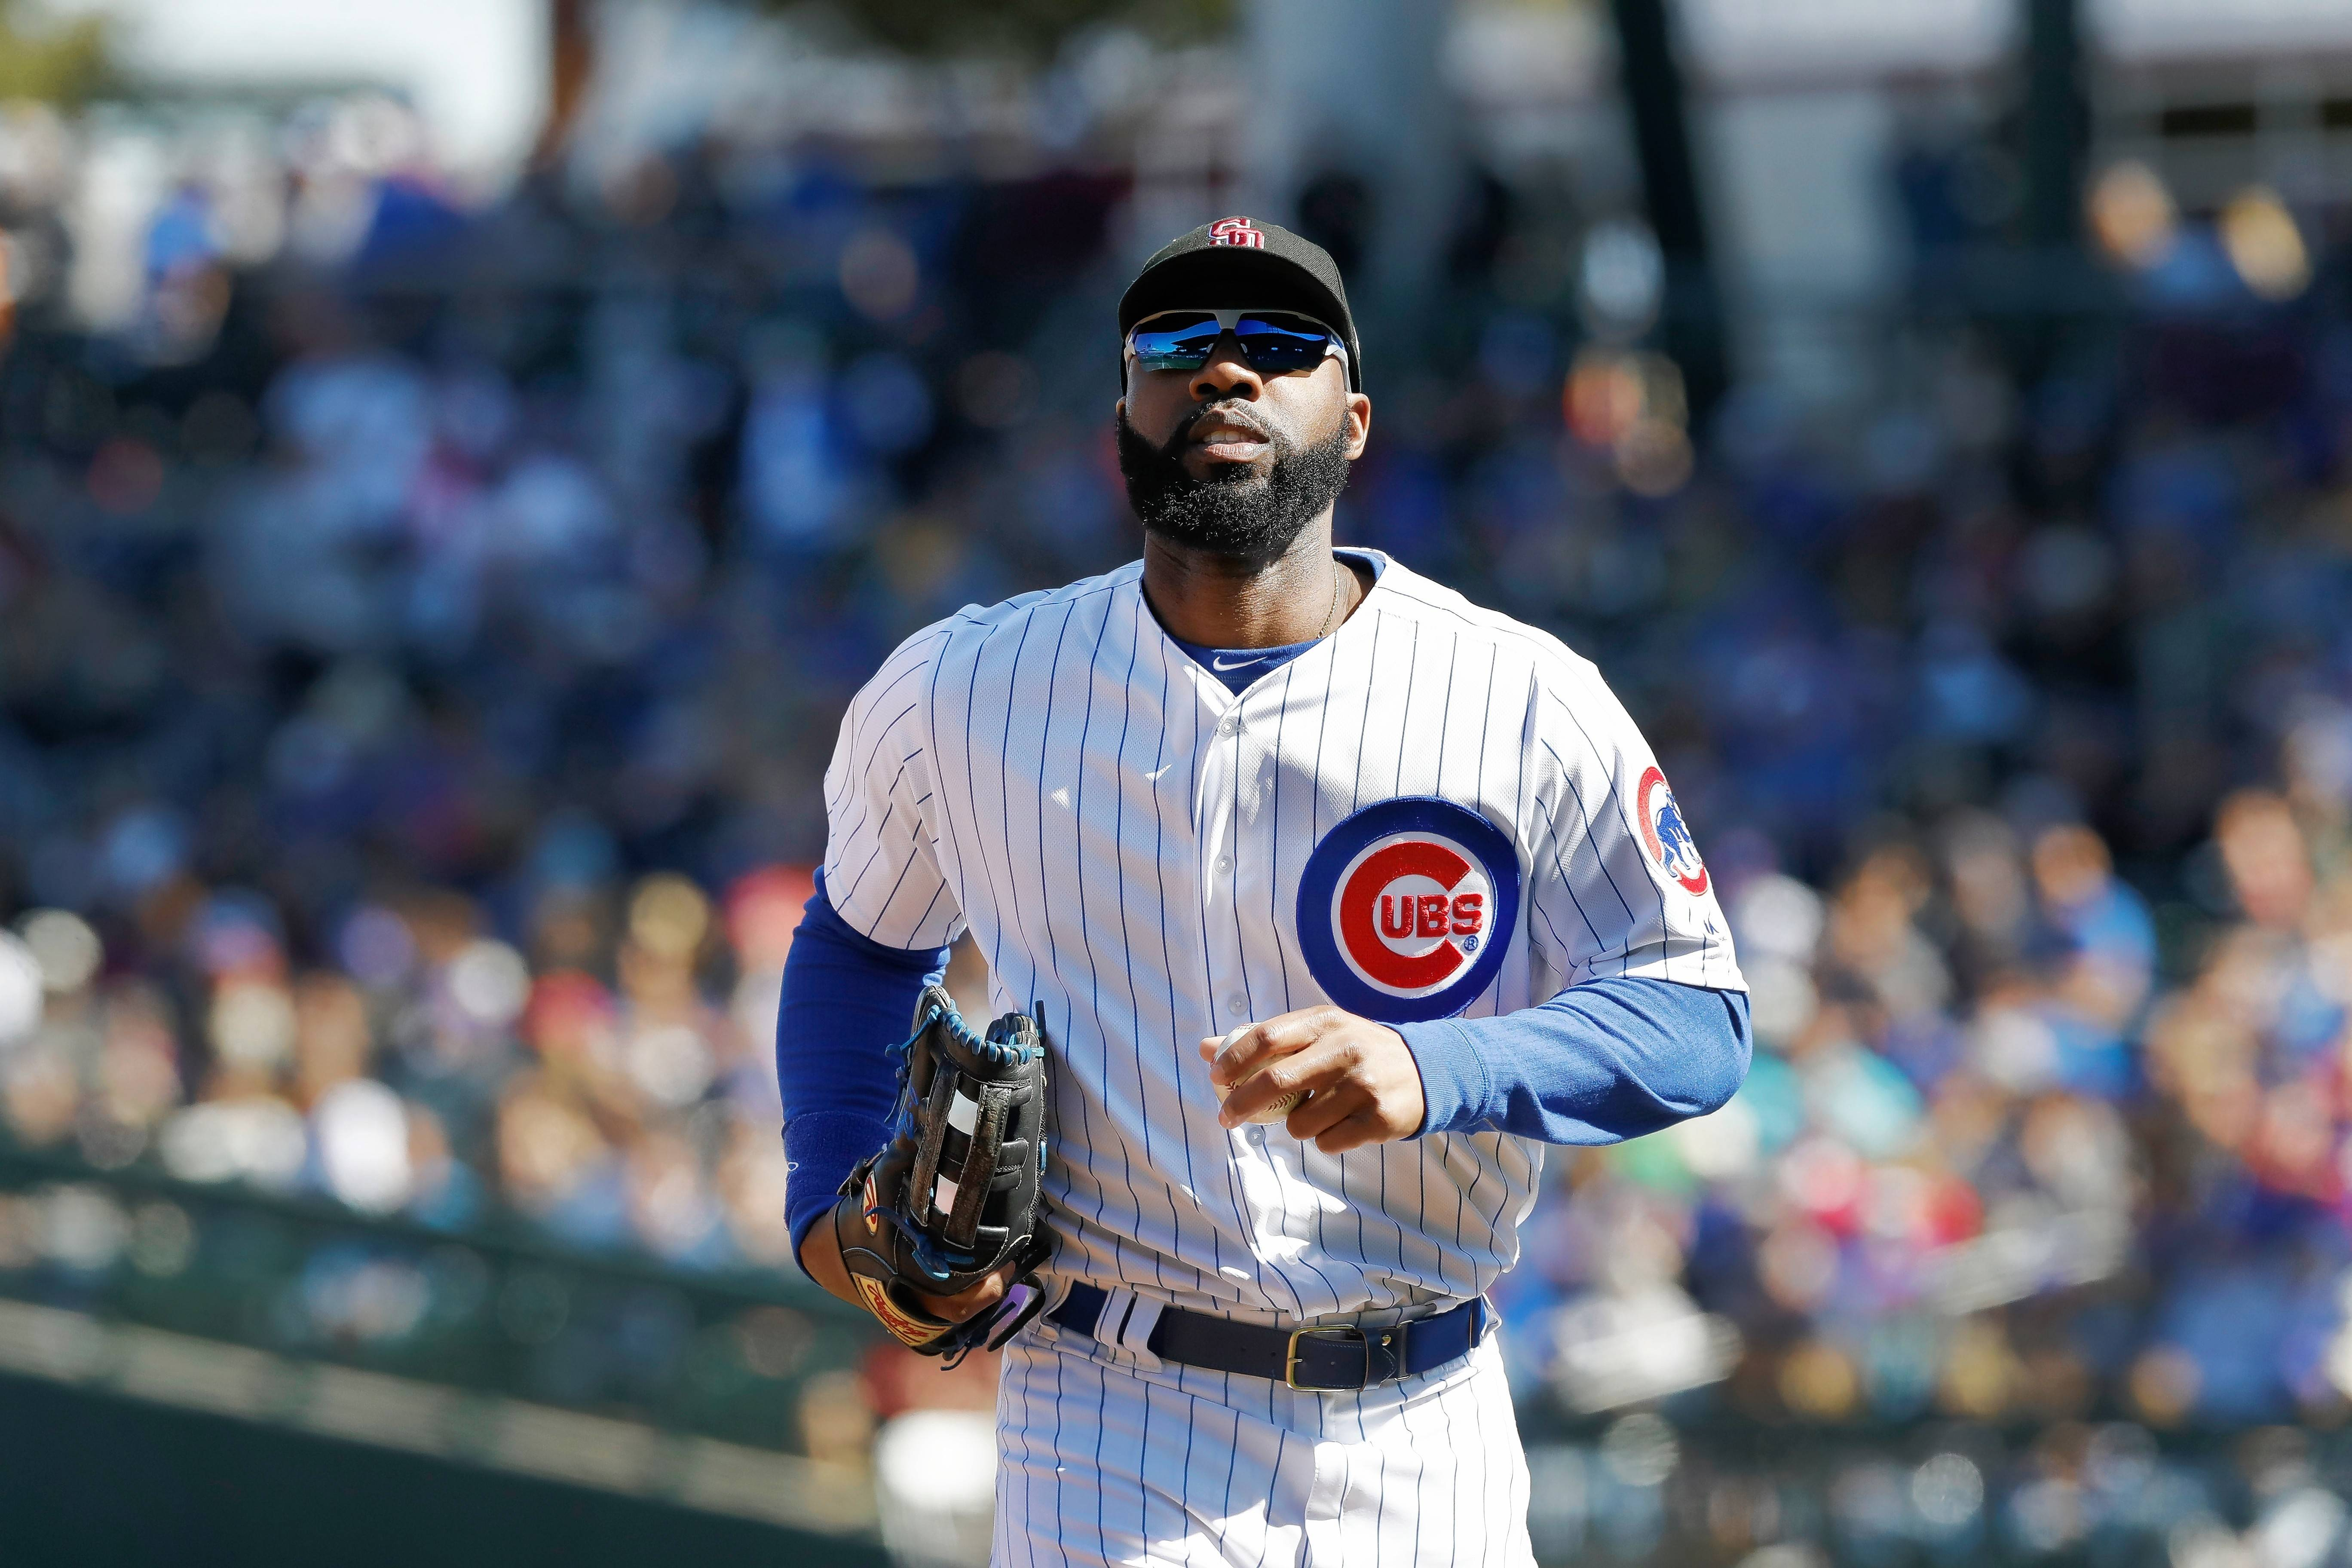 Cubs still have faith Heyward's hitting will come around